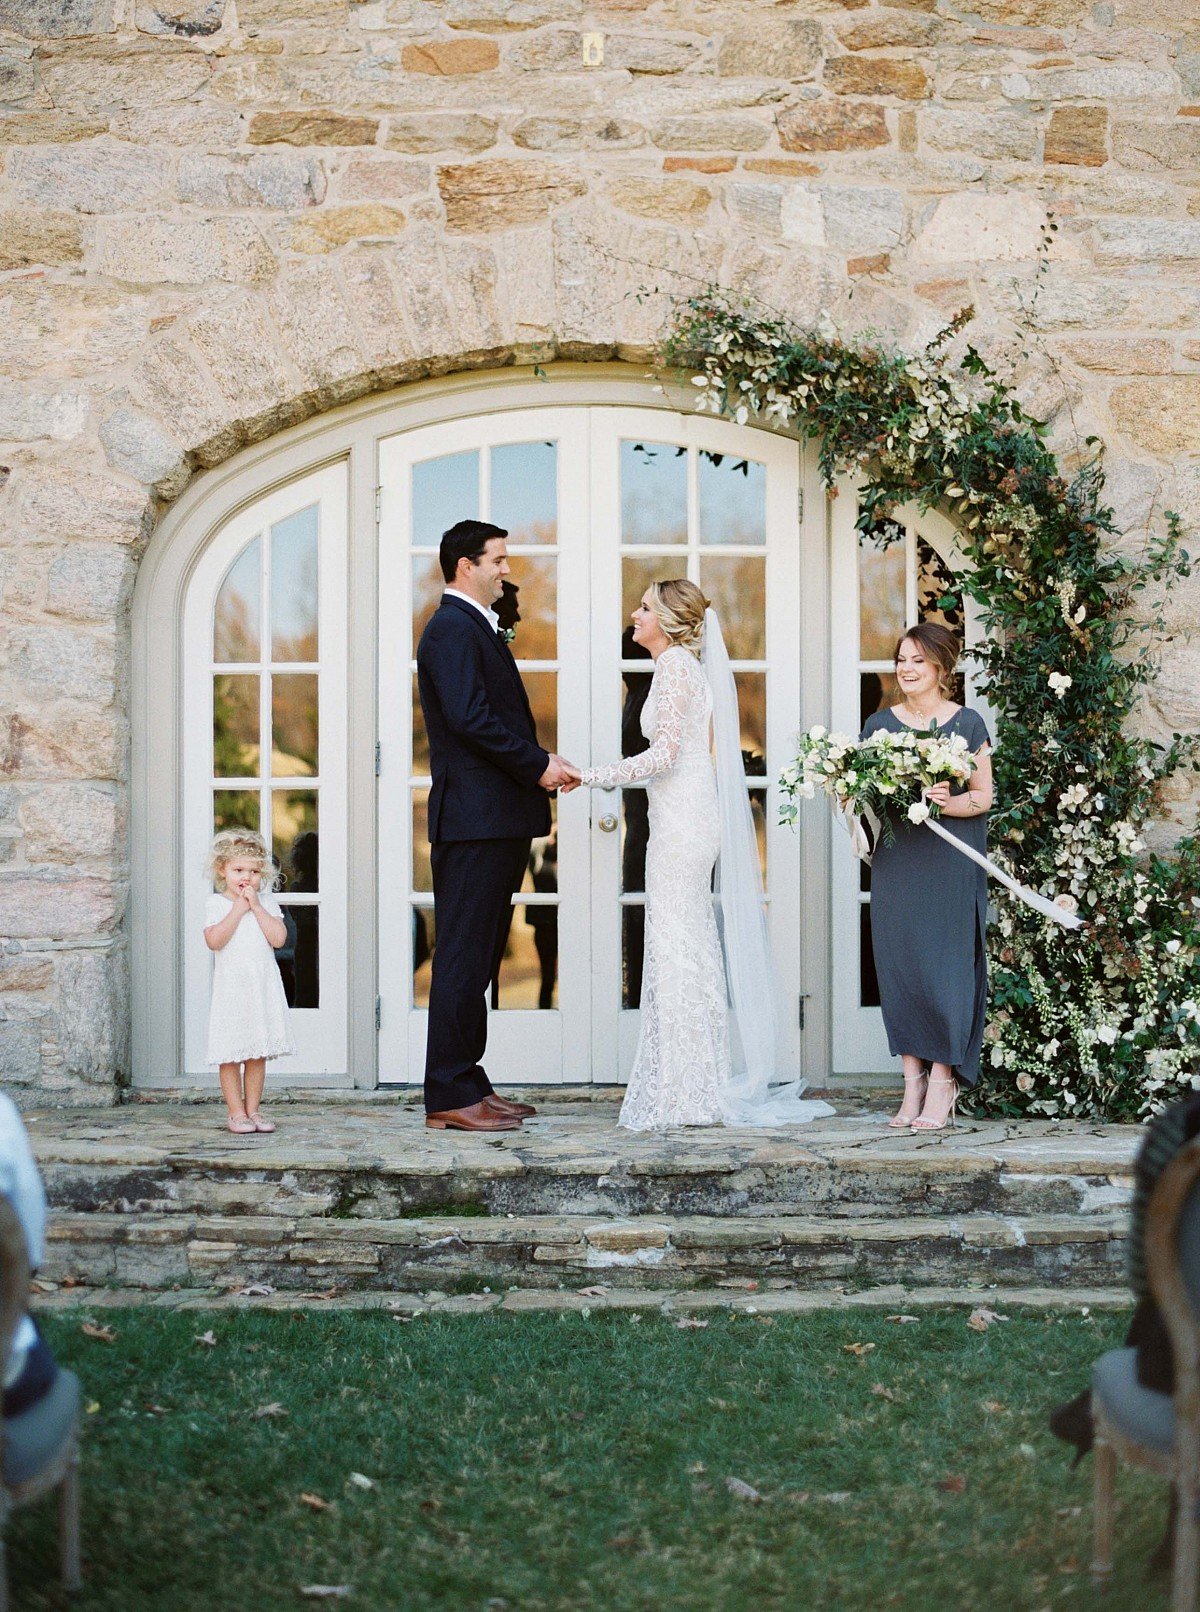 Romantic Garden Wedding Inspiration in a Lace Dress